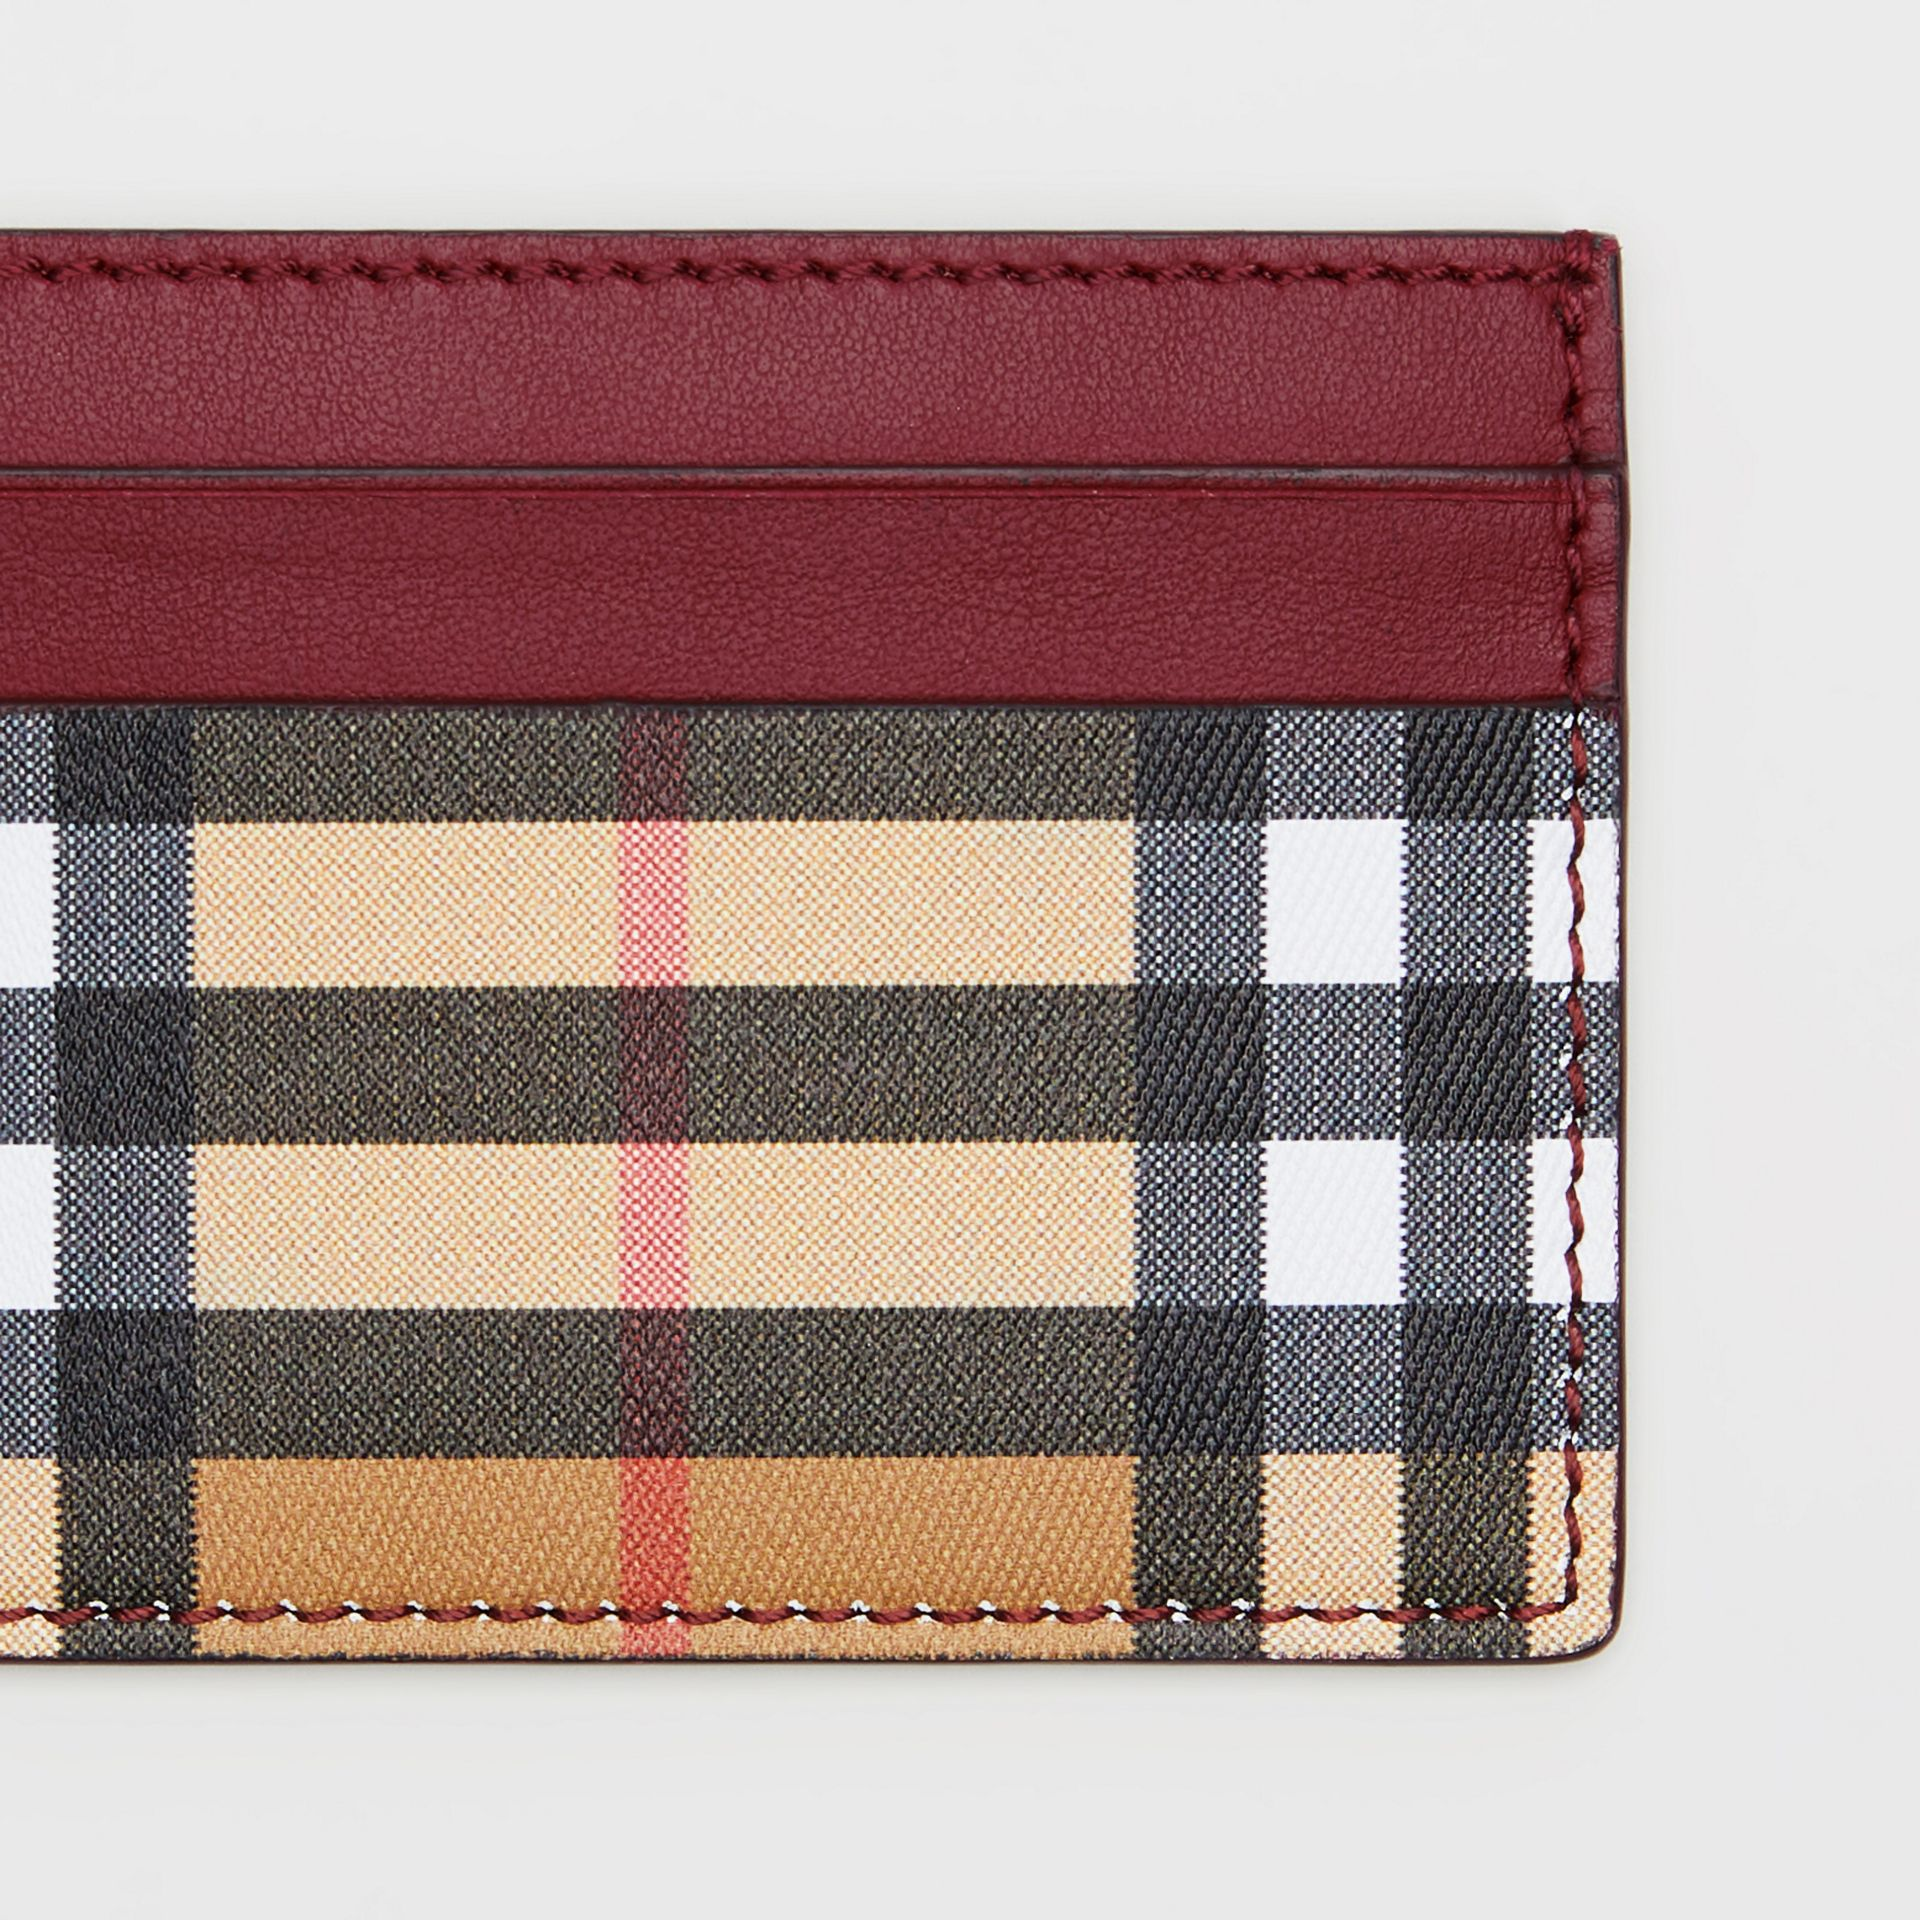 Vintage Check and Leather Card Case in Crimson - Women | Burberry - gallery image 1